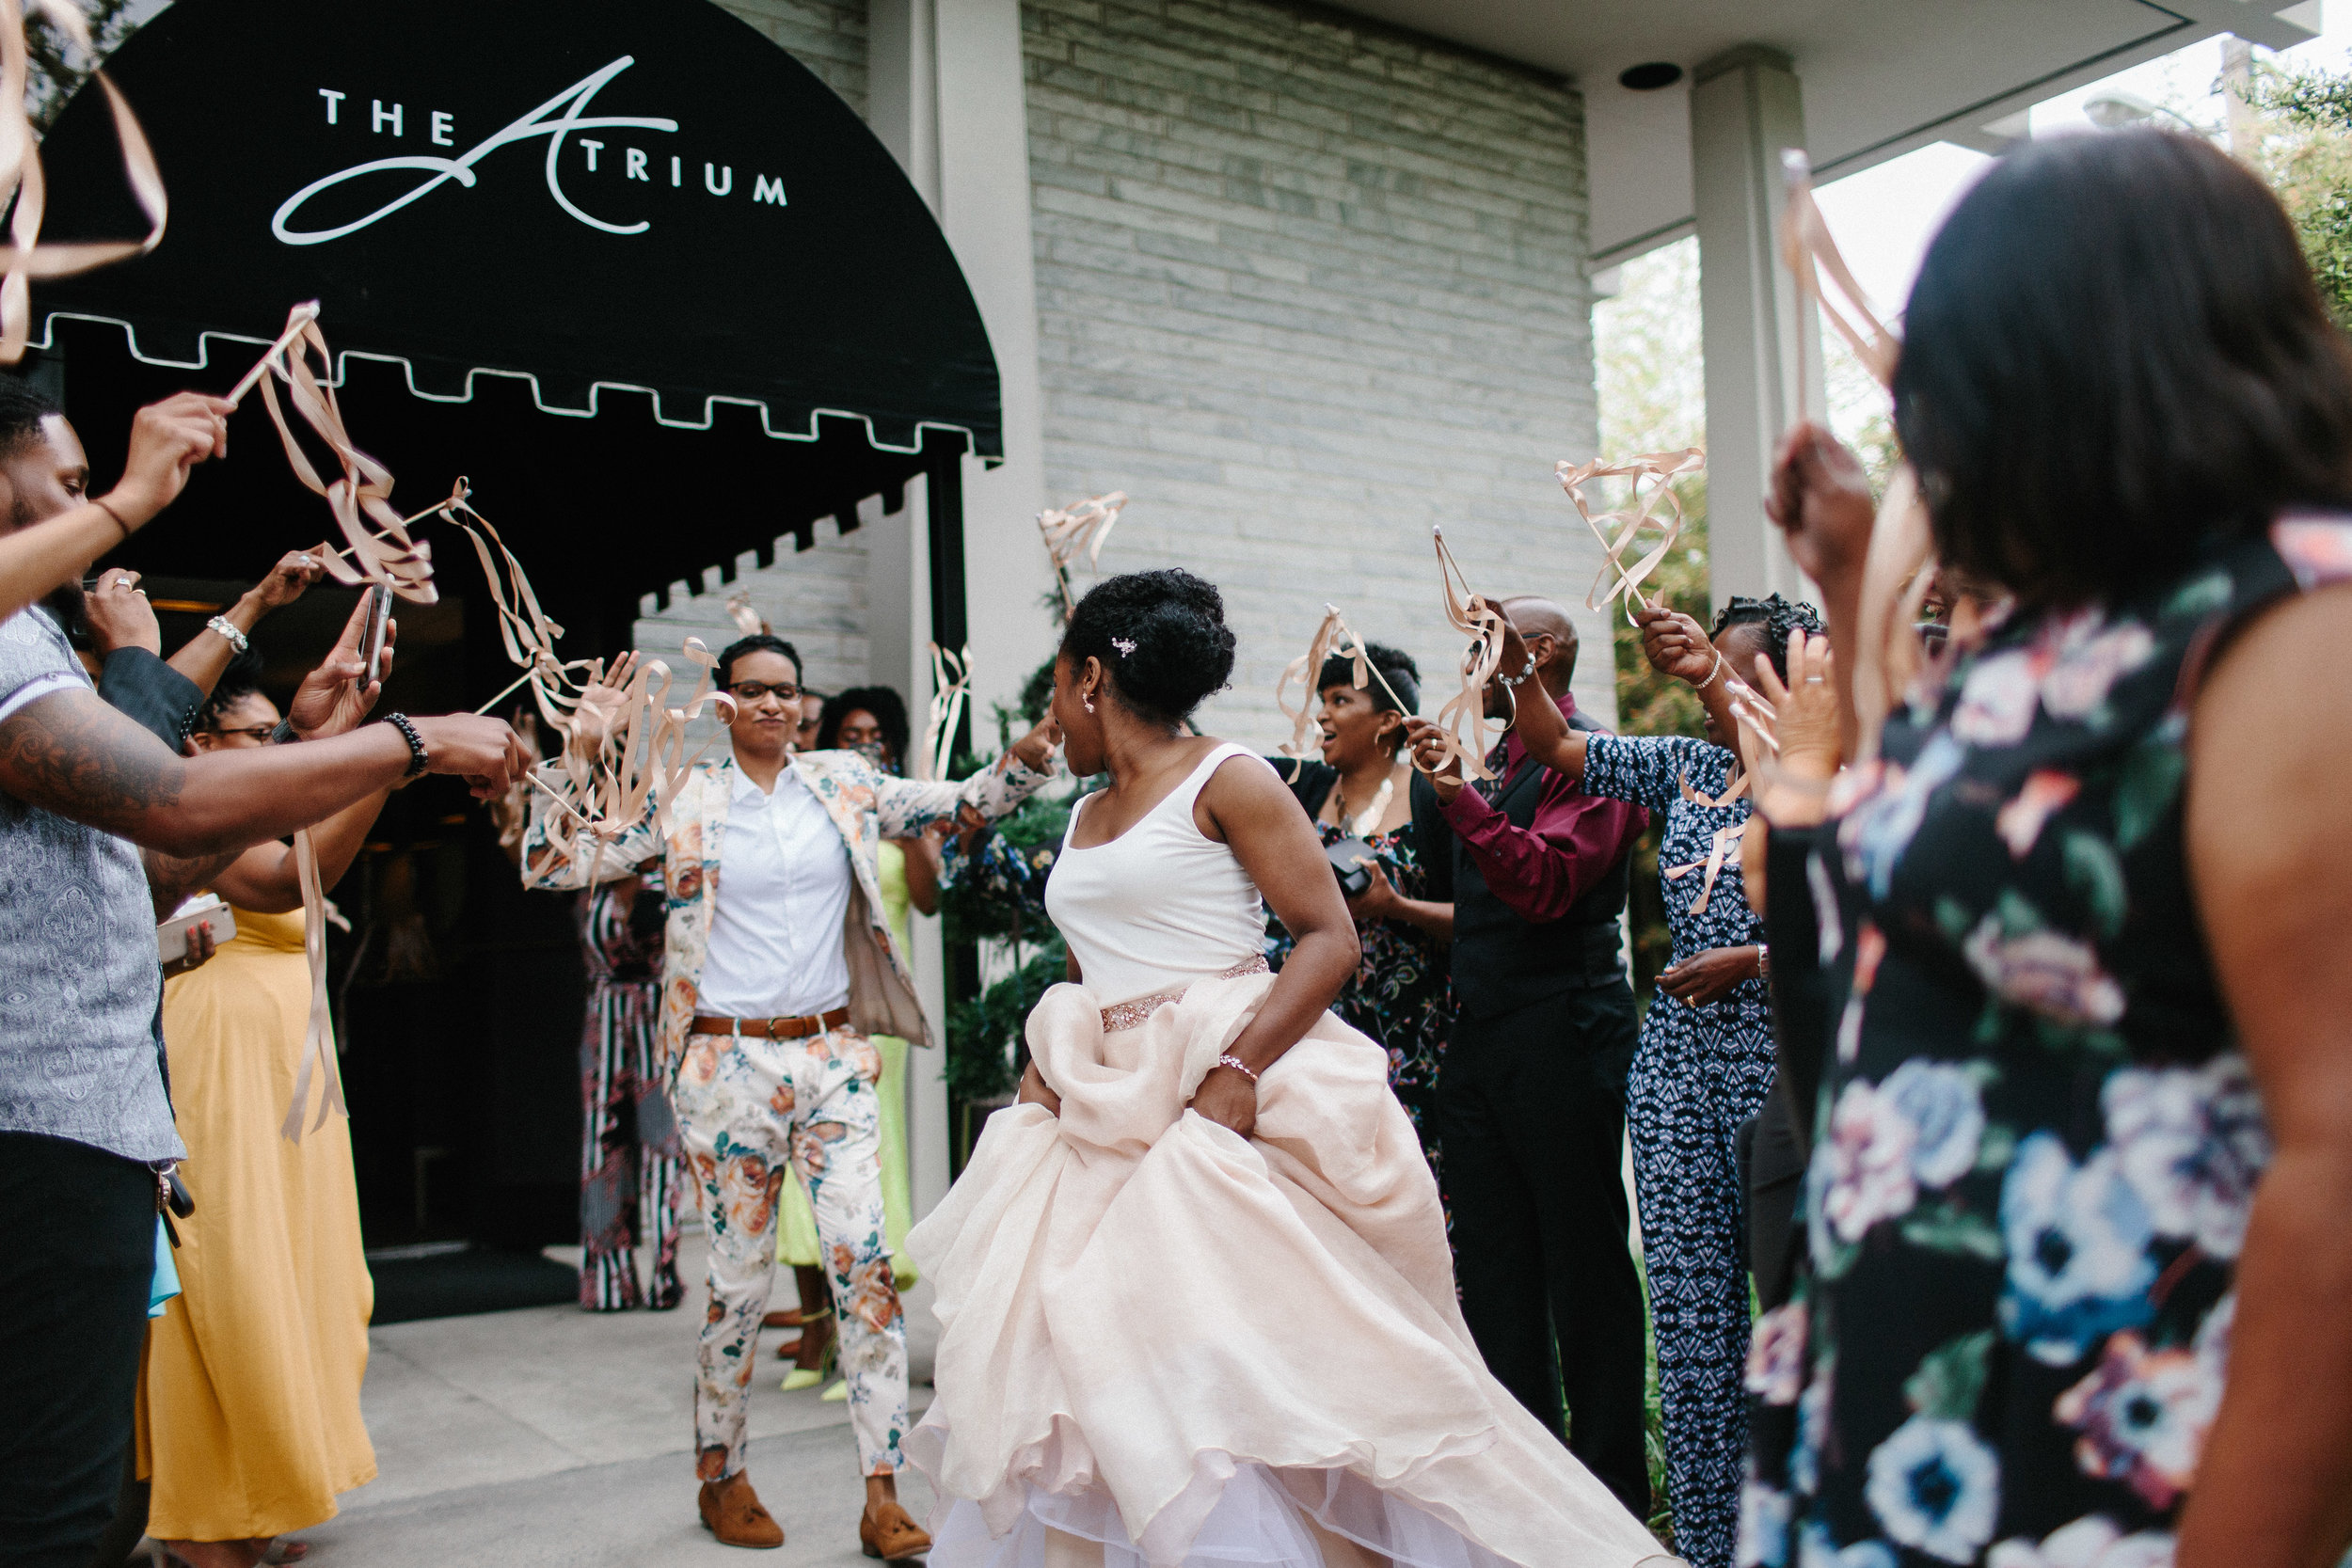 the_atrium_wedding_atlanta_norcross_lifestyle_photographers_lgbtq_1683.jpg